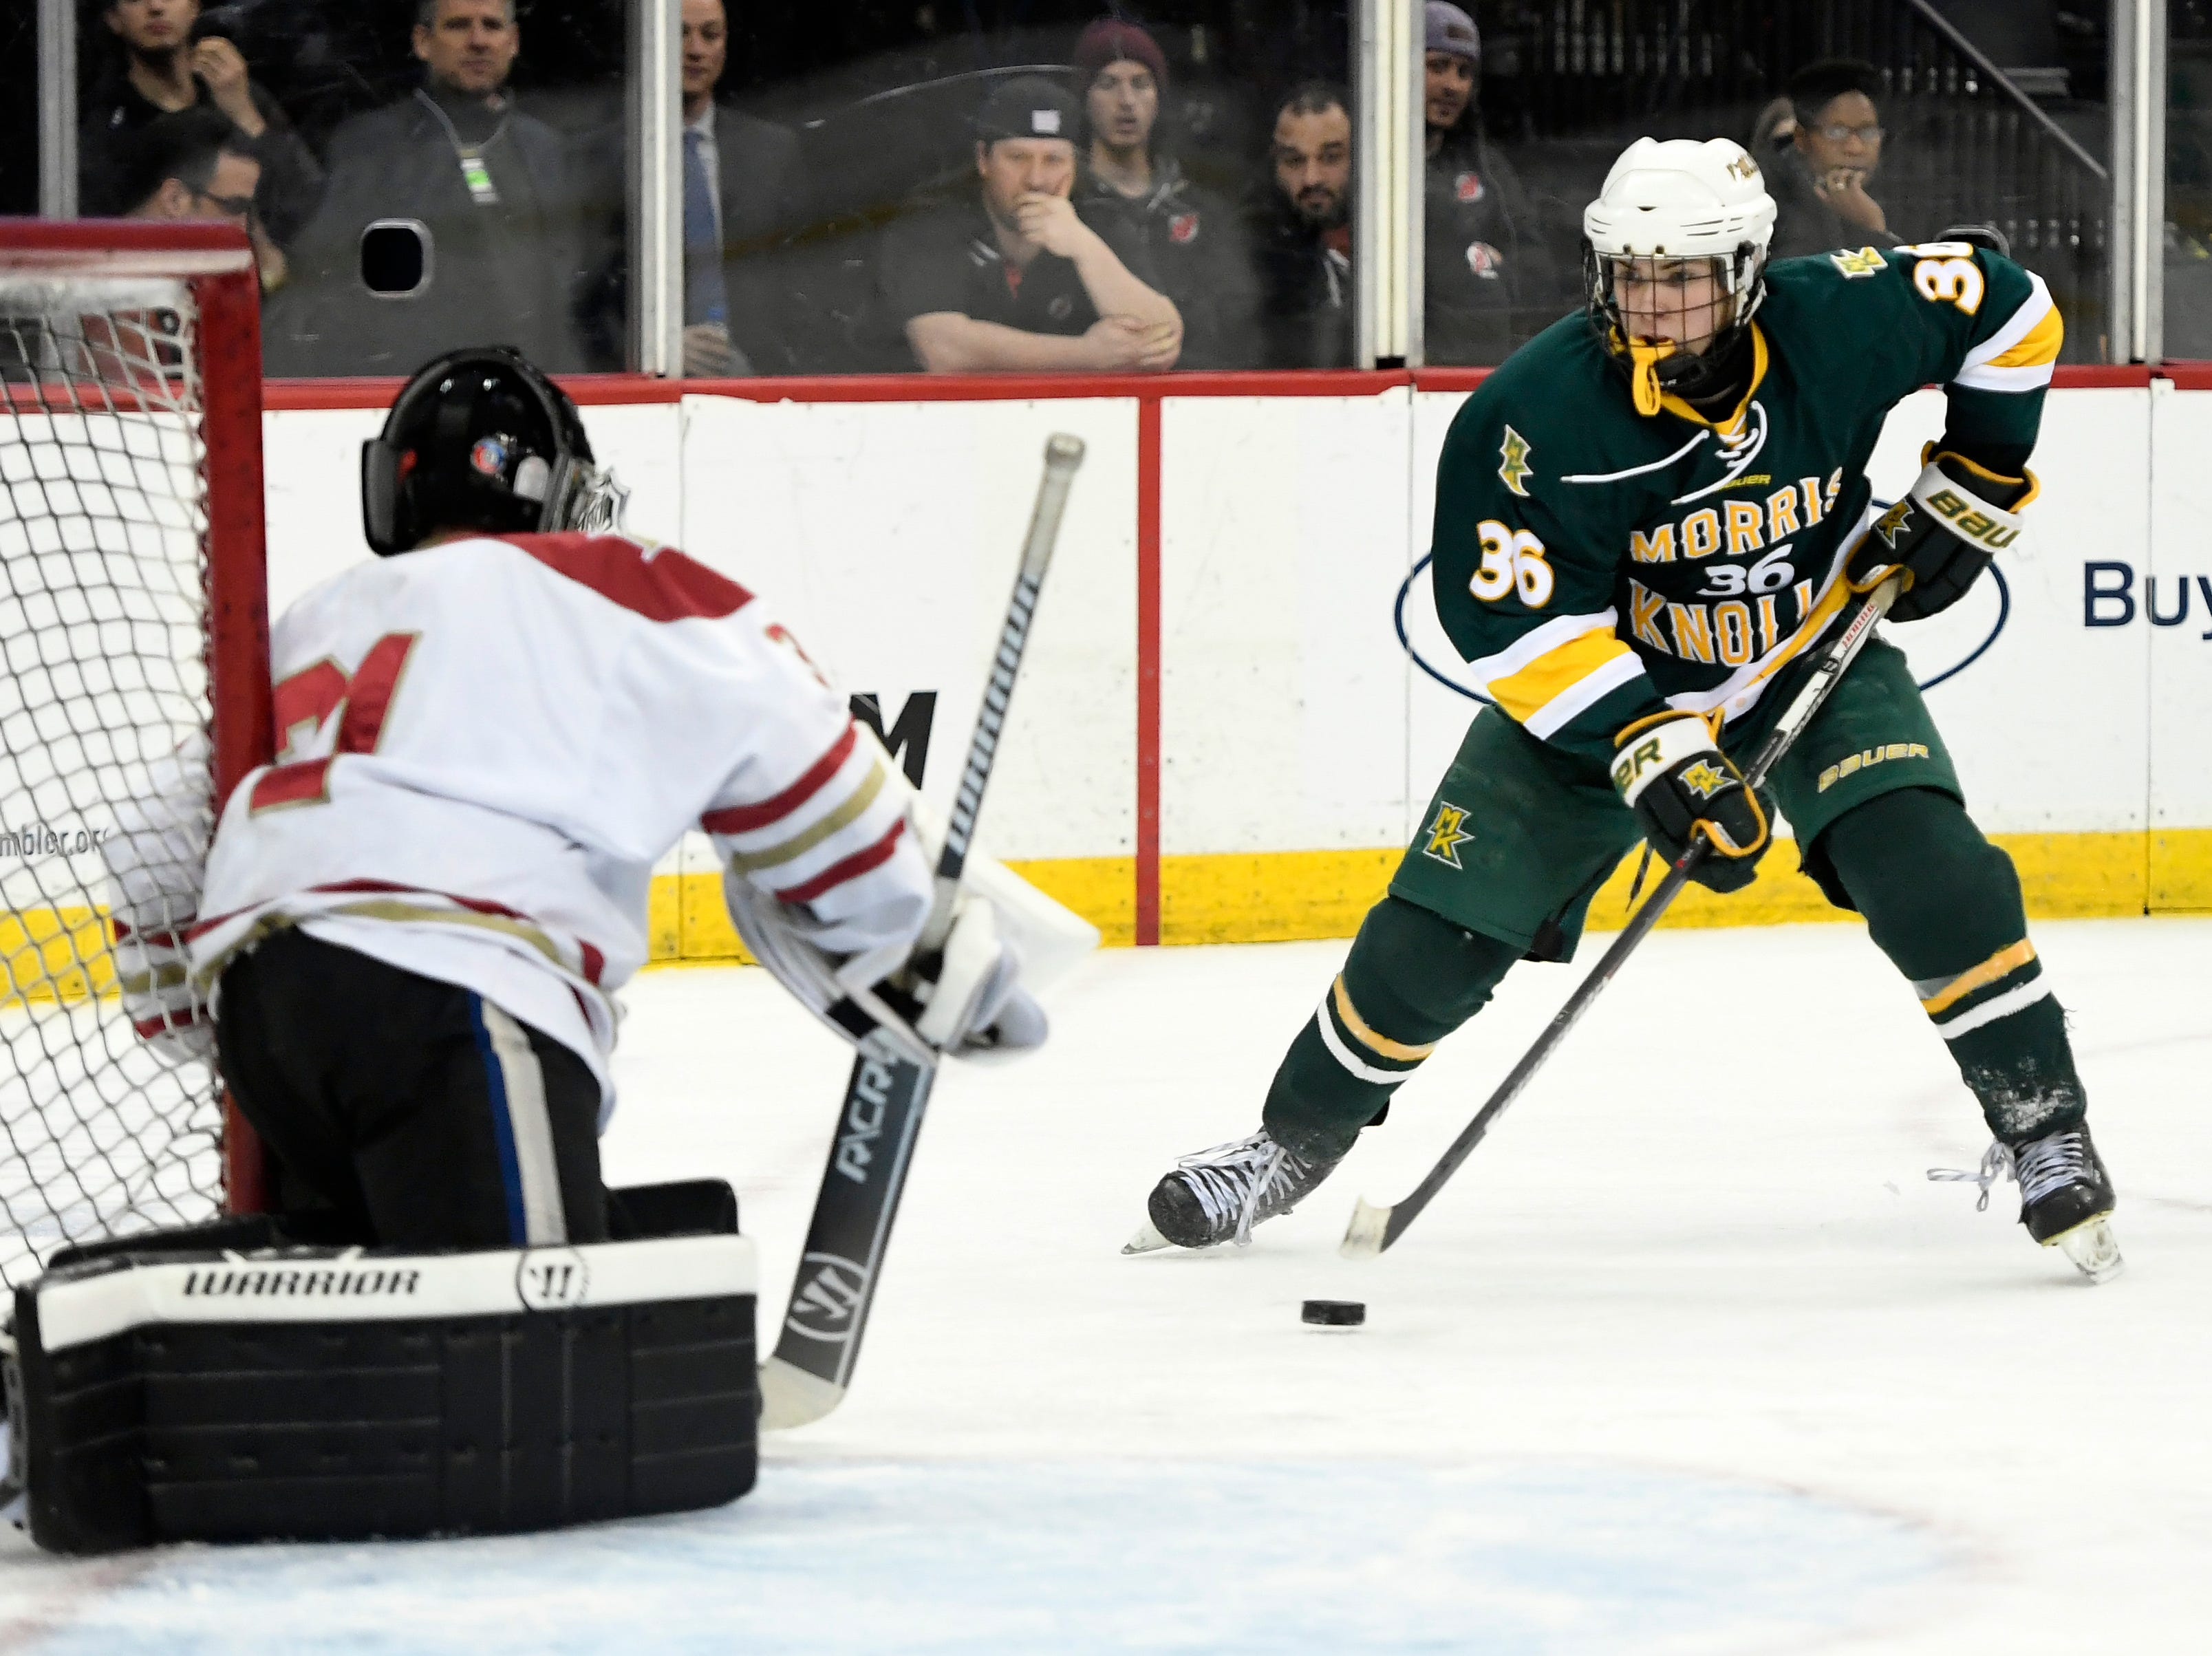 Morris Knolls/Hills' Jason Kwestel (36) scores in the second period against Hillsborough in the Public A ice hockey final at the Prudential Center on Monday, March 4, 2019, in Newark.